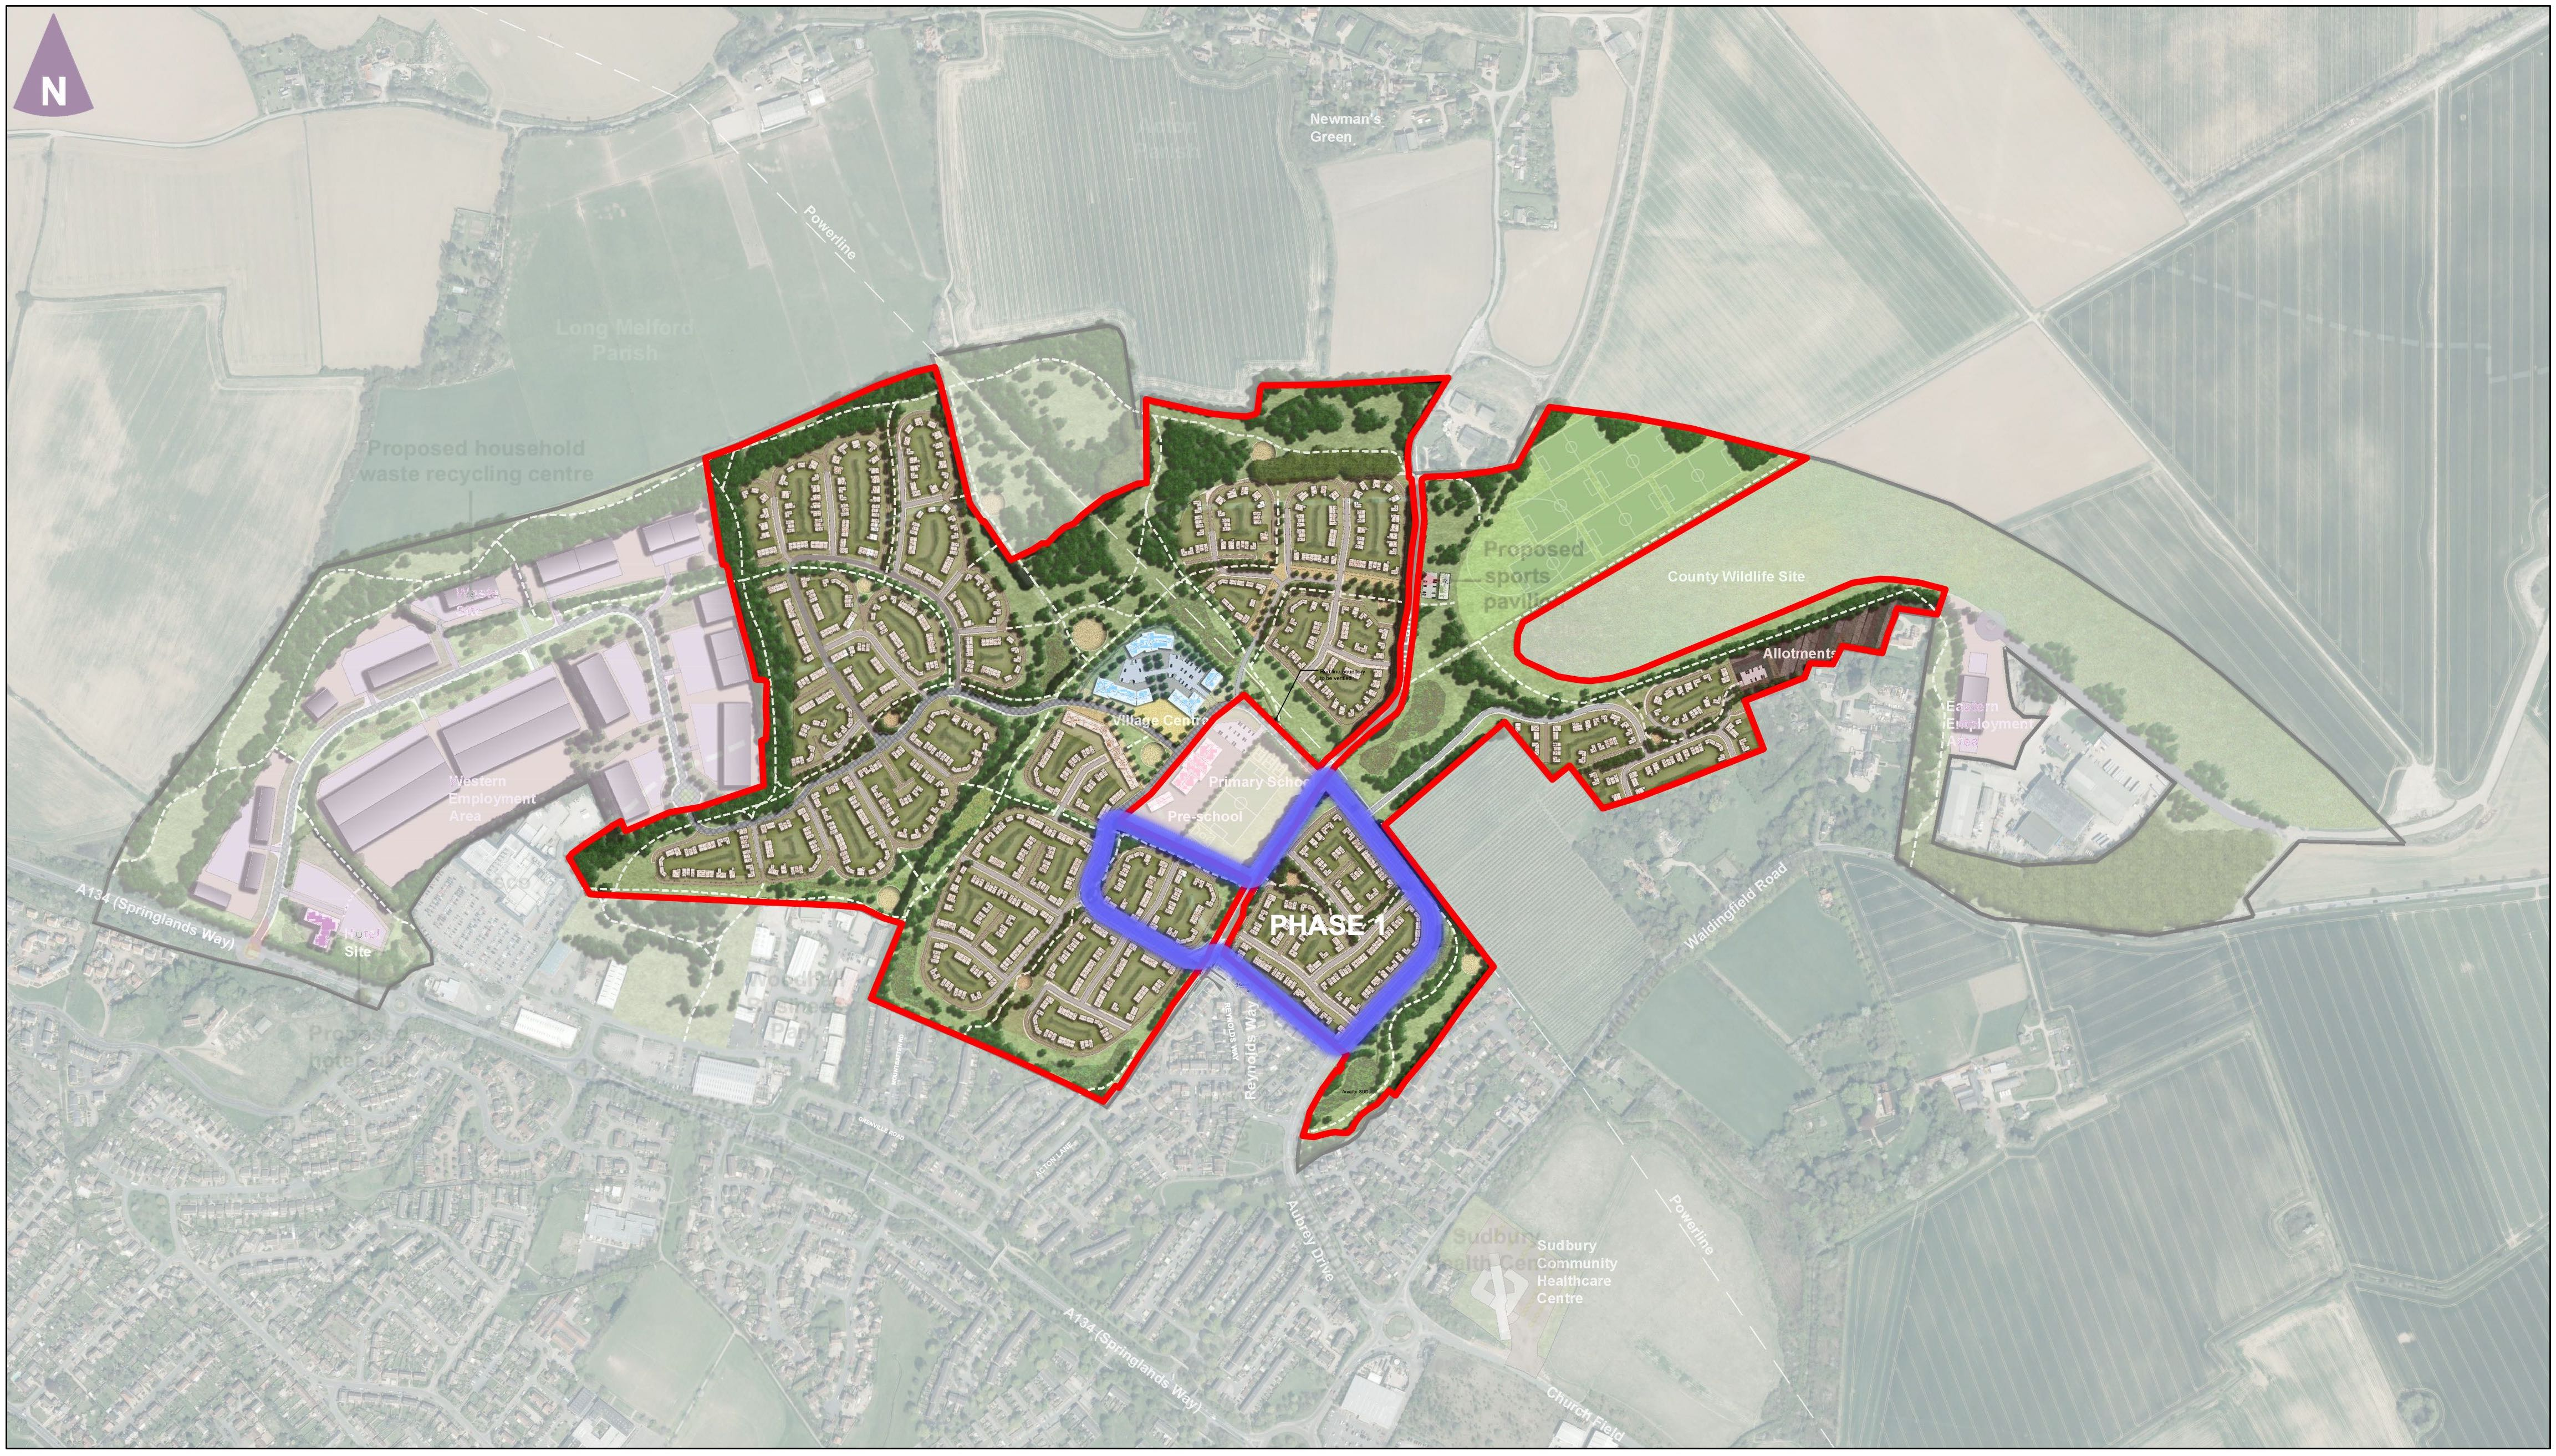 Chilton Woods - TW acquisition boundary phase 1